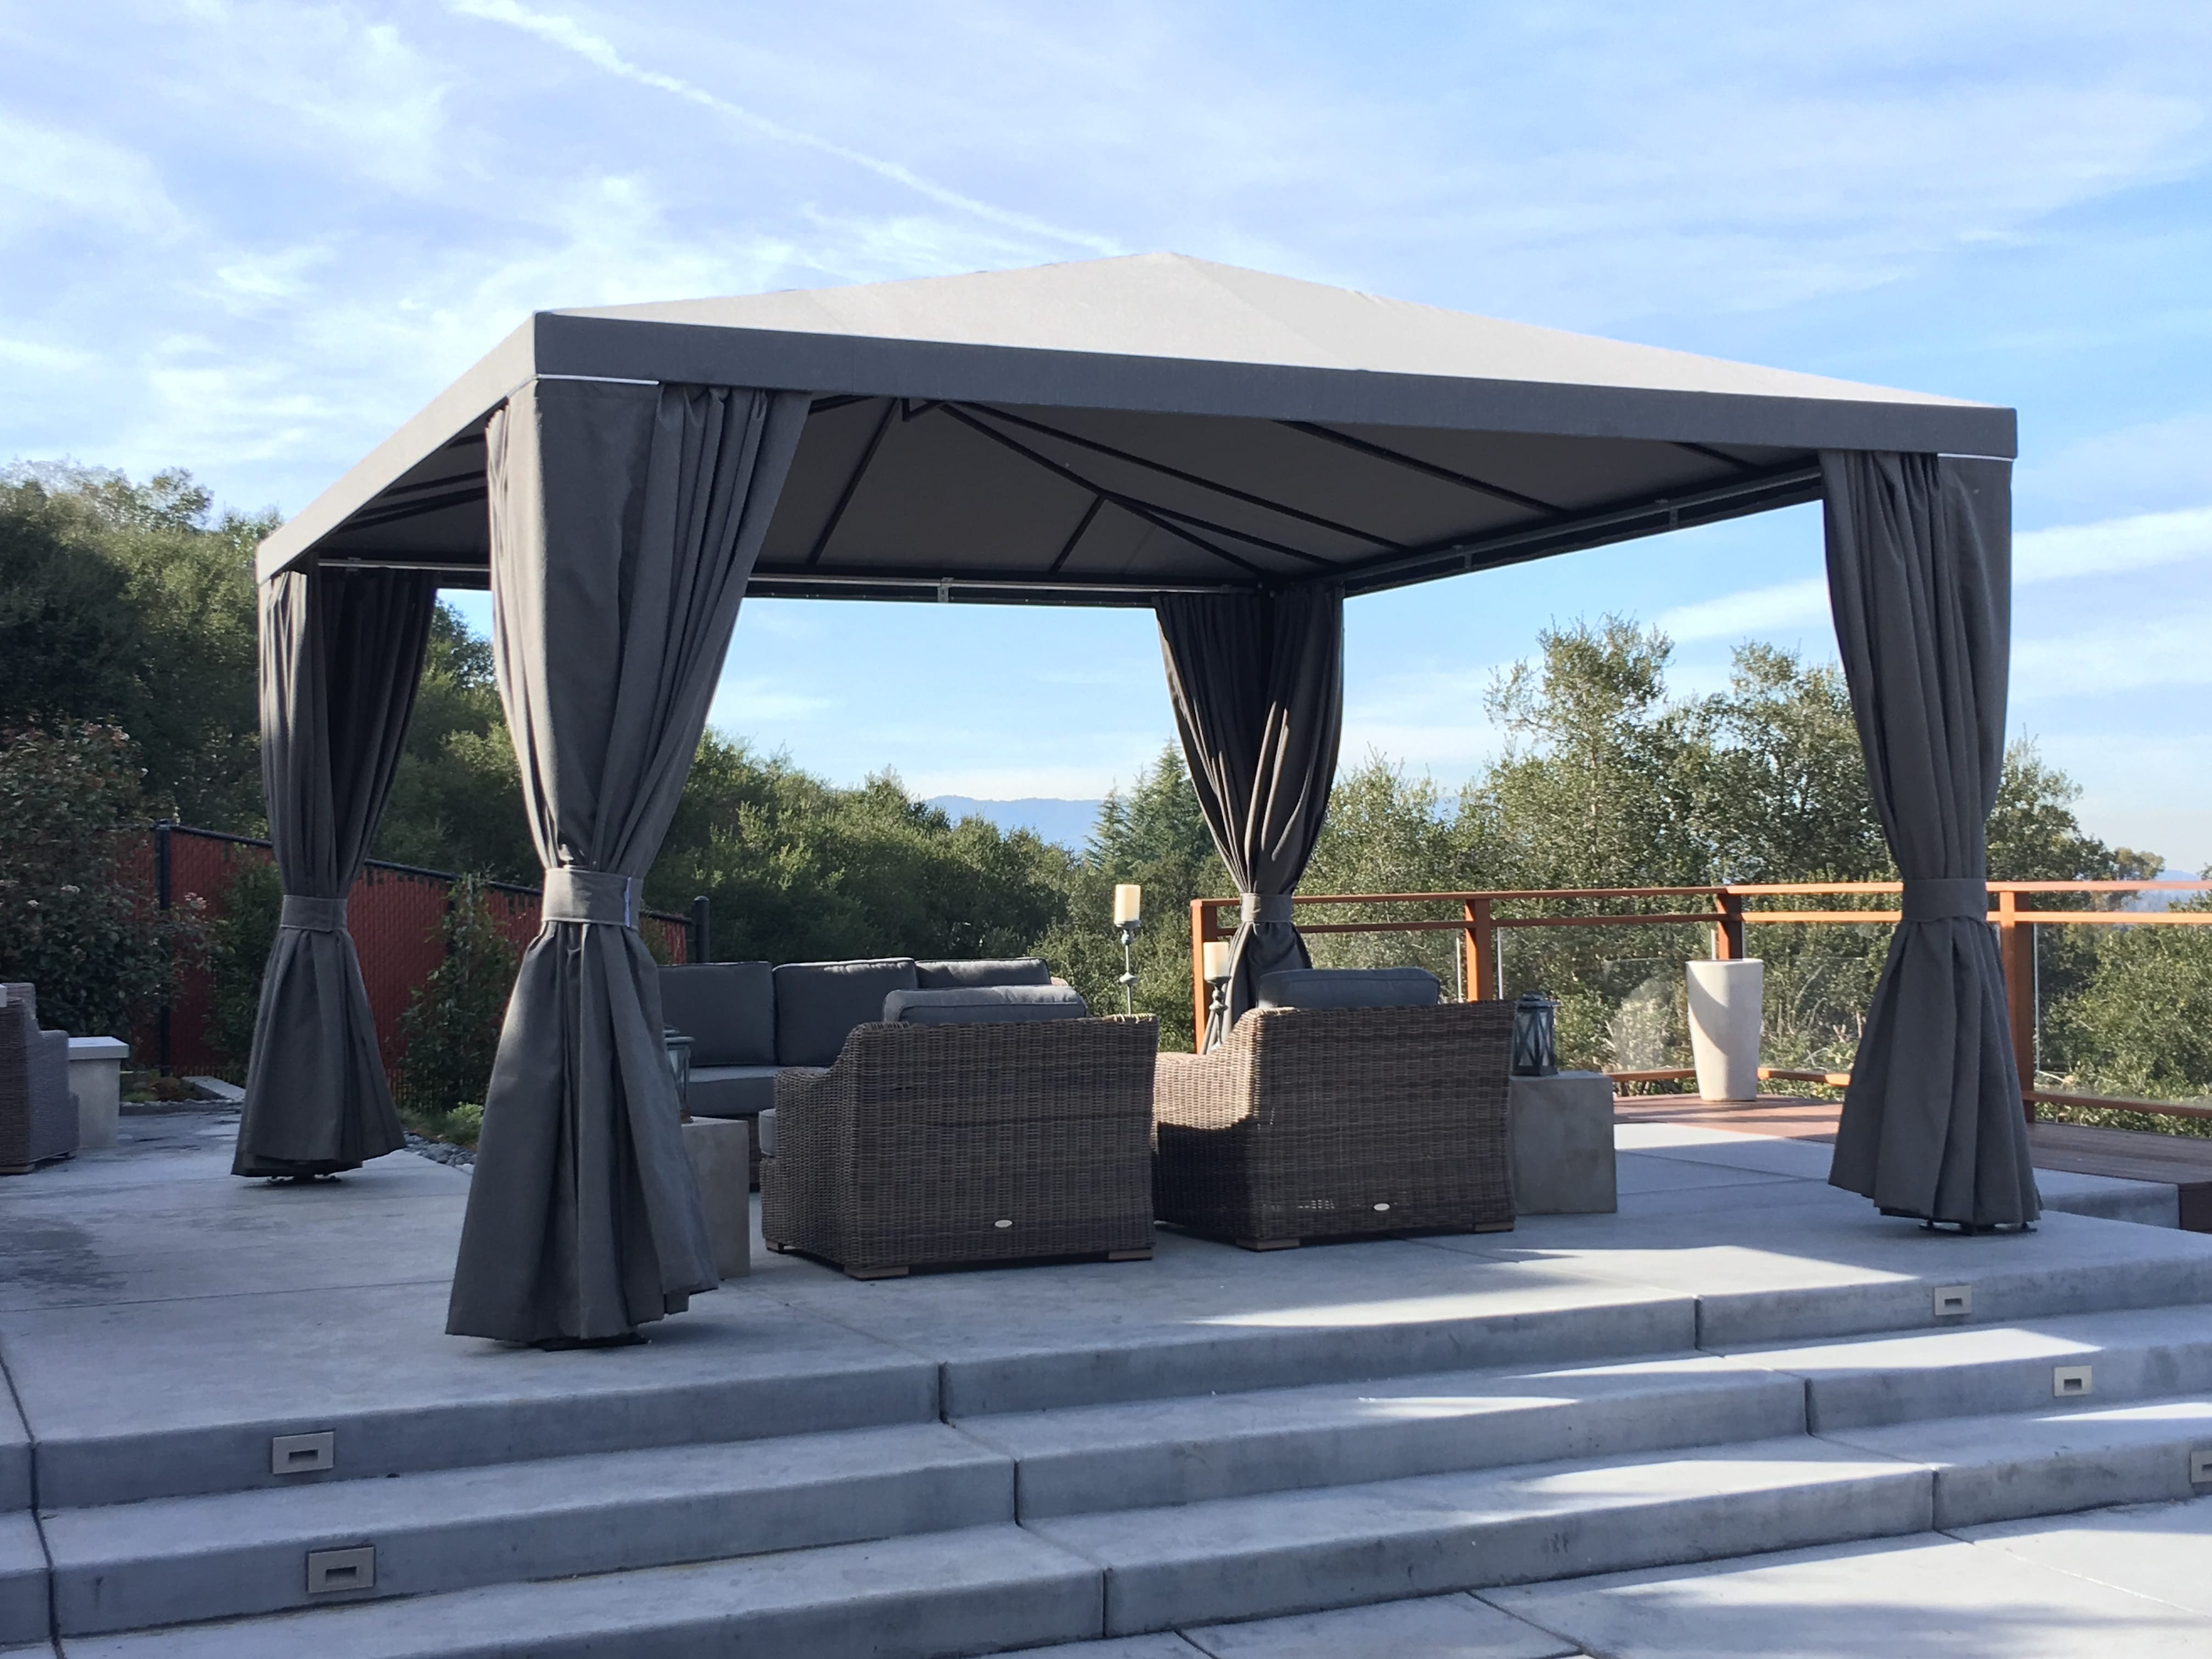 What Are Free Standing Canopies/Cabanas? & Sunset Canvas u0026 Awning - Fabric Awnings Retractable Awnings ...